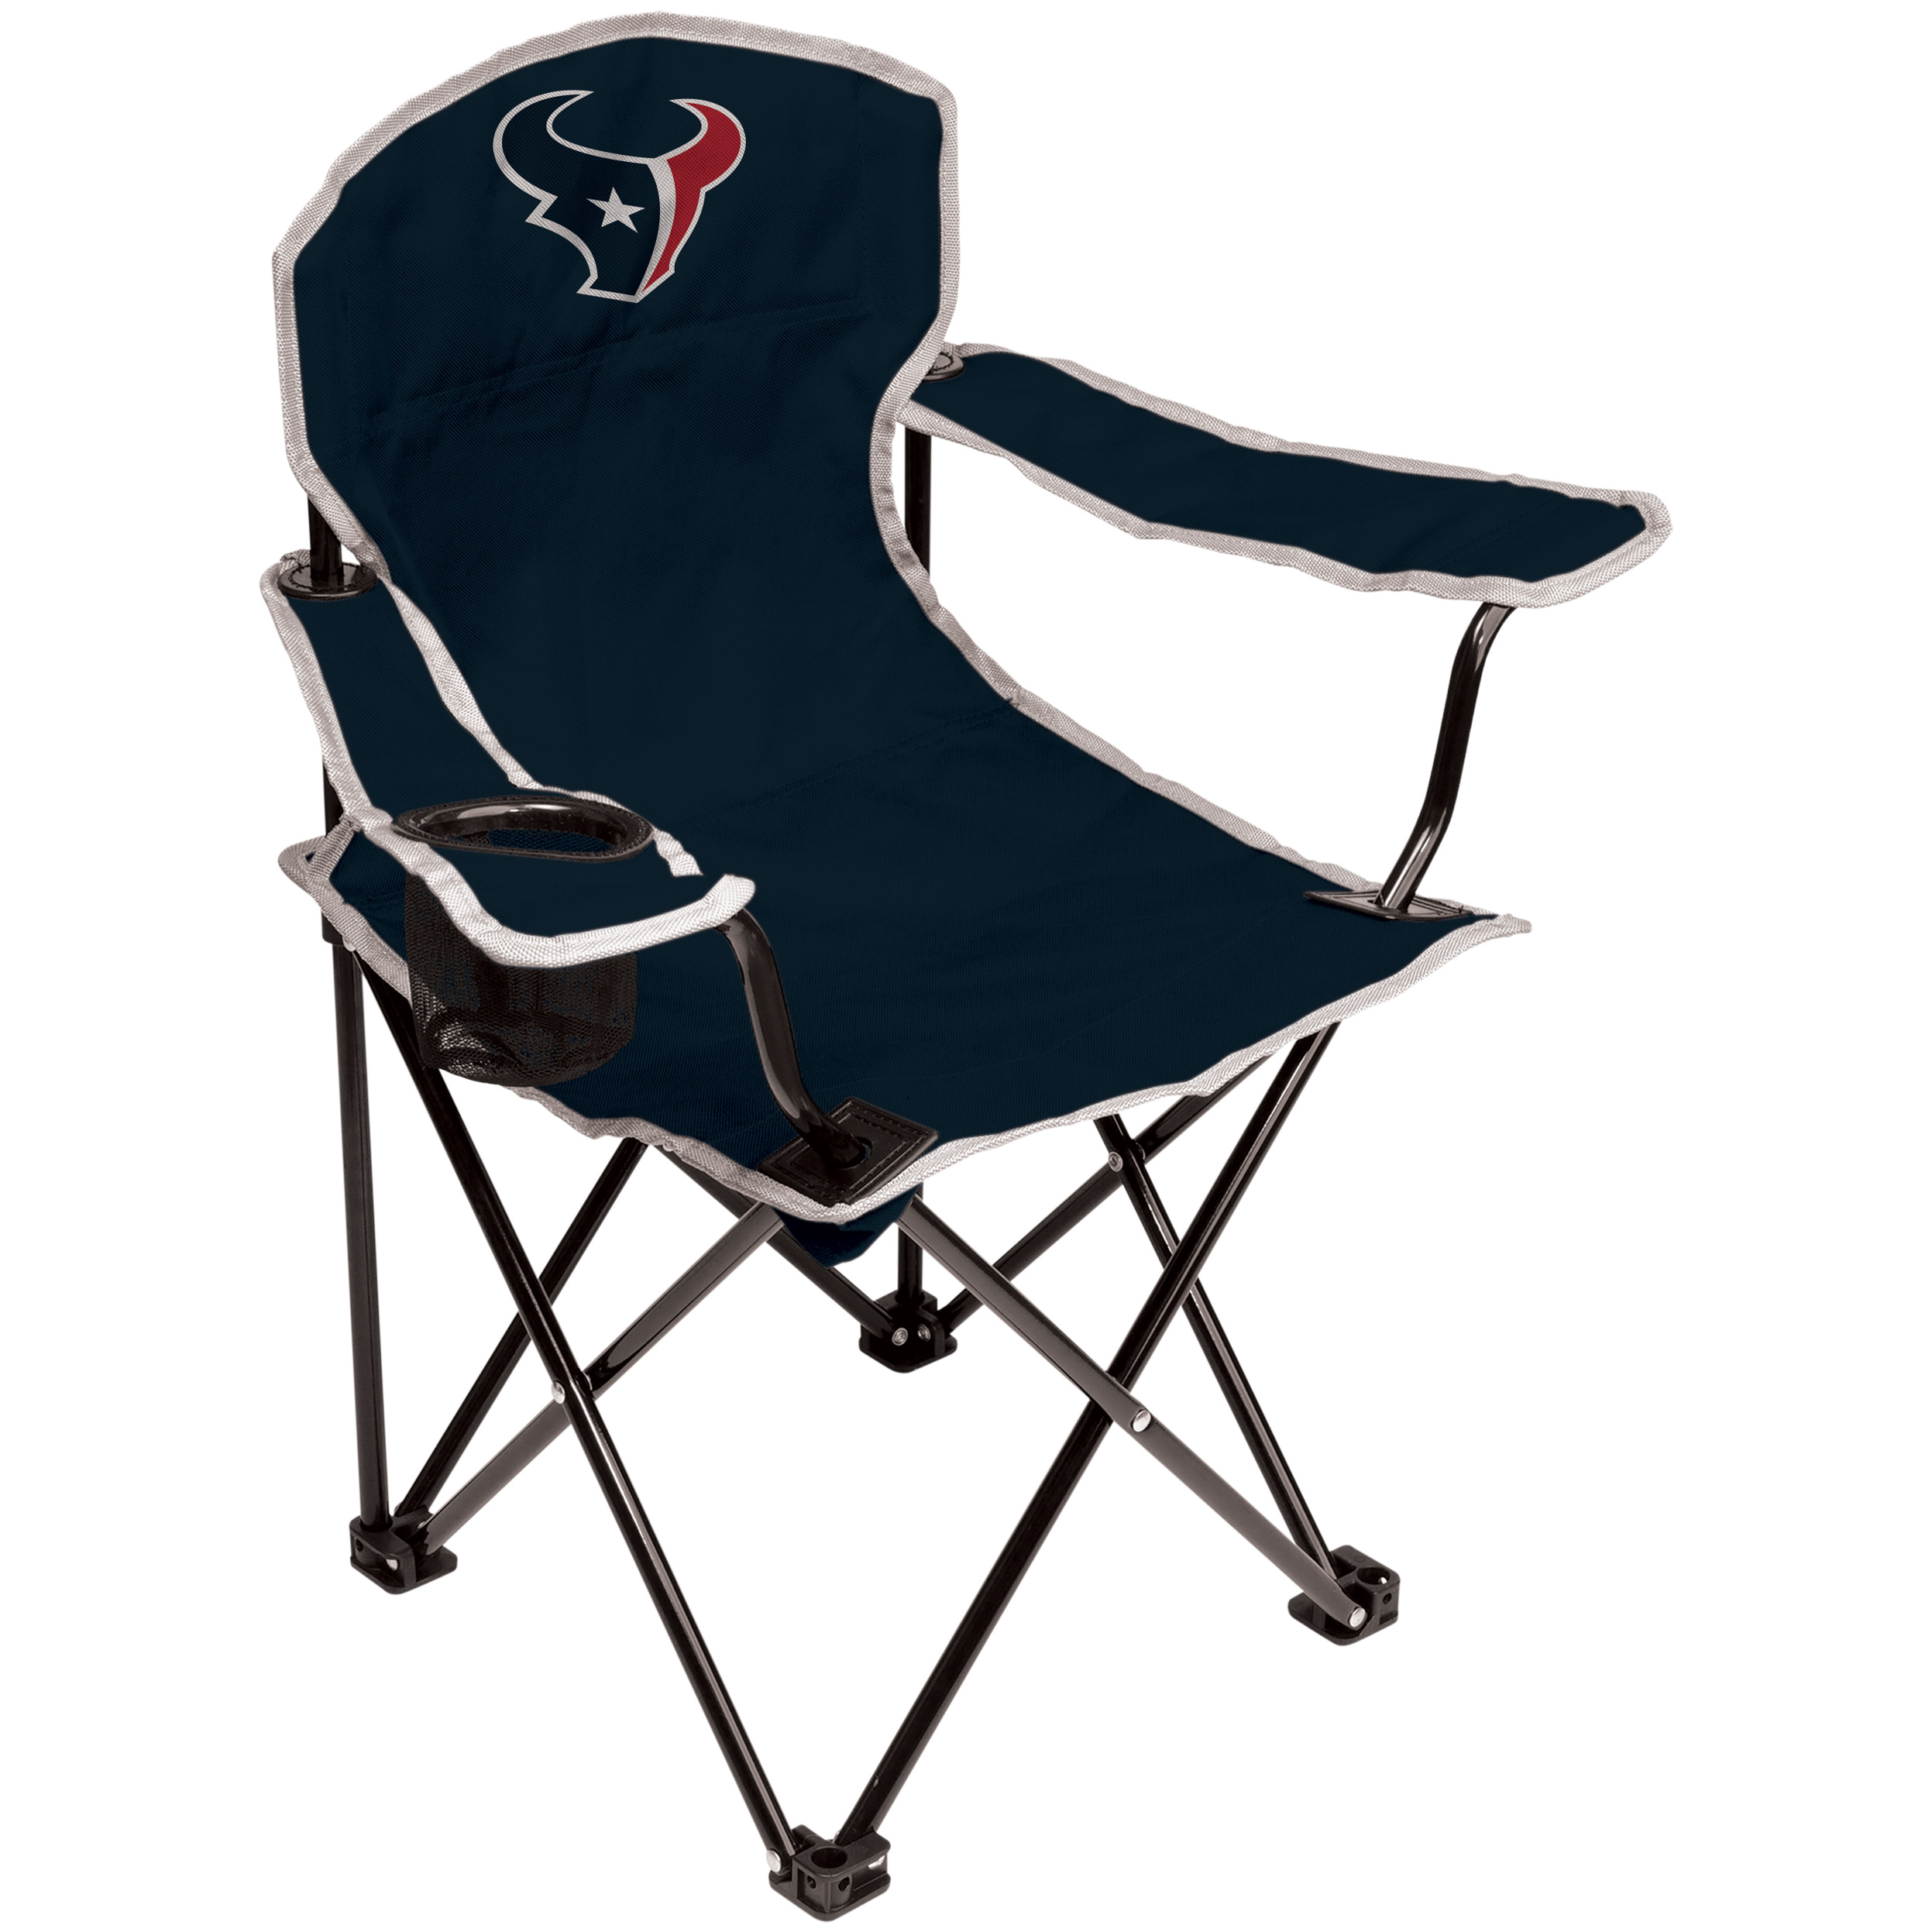 Houston Texans Coleman Youth Lawn Chair - Navy - No Size